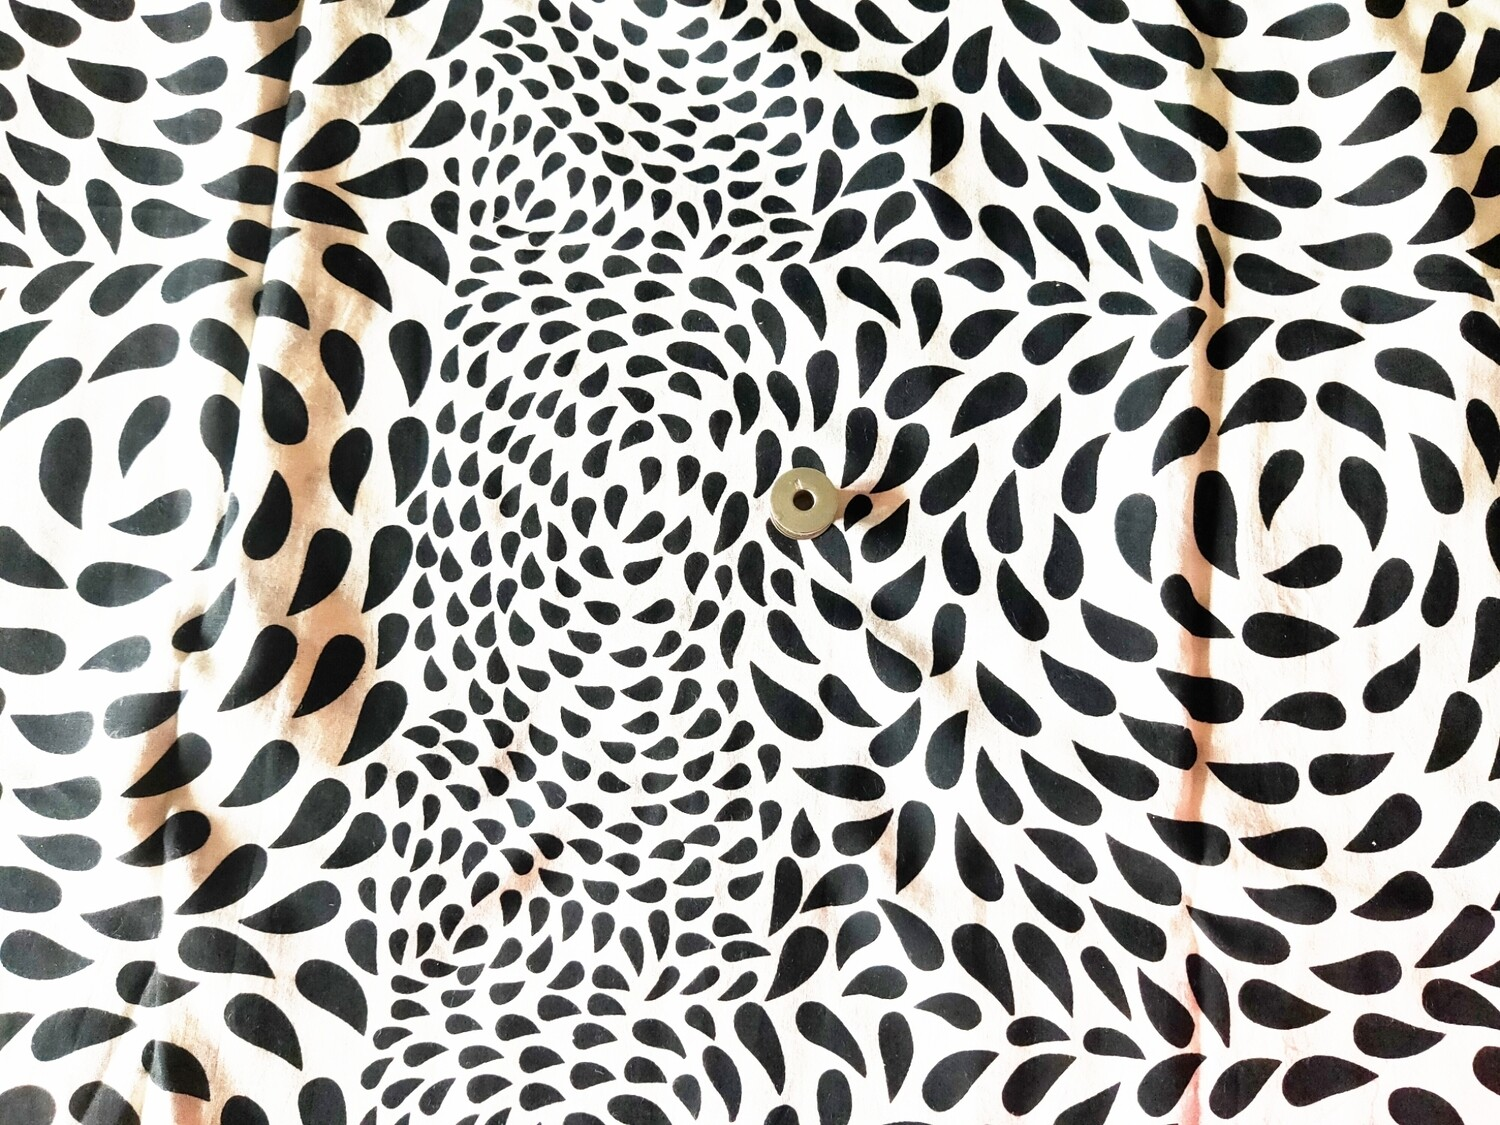 Black and White Cotton Fabrics - Water Drop Design - 44 inch wide - sold by half meter